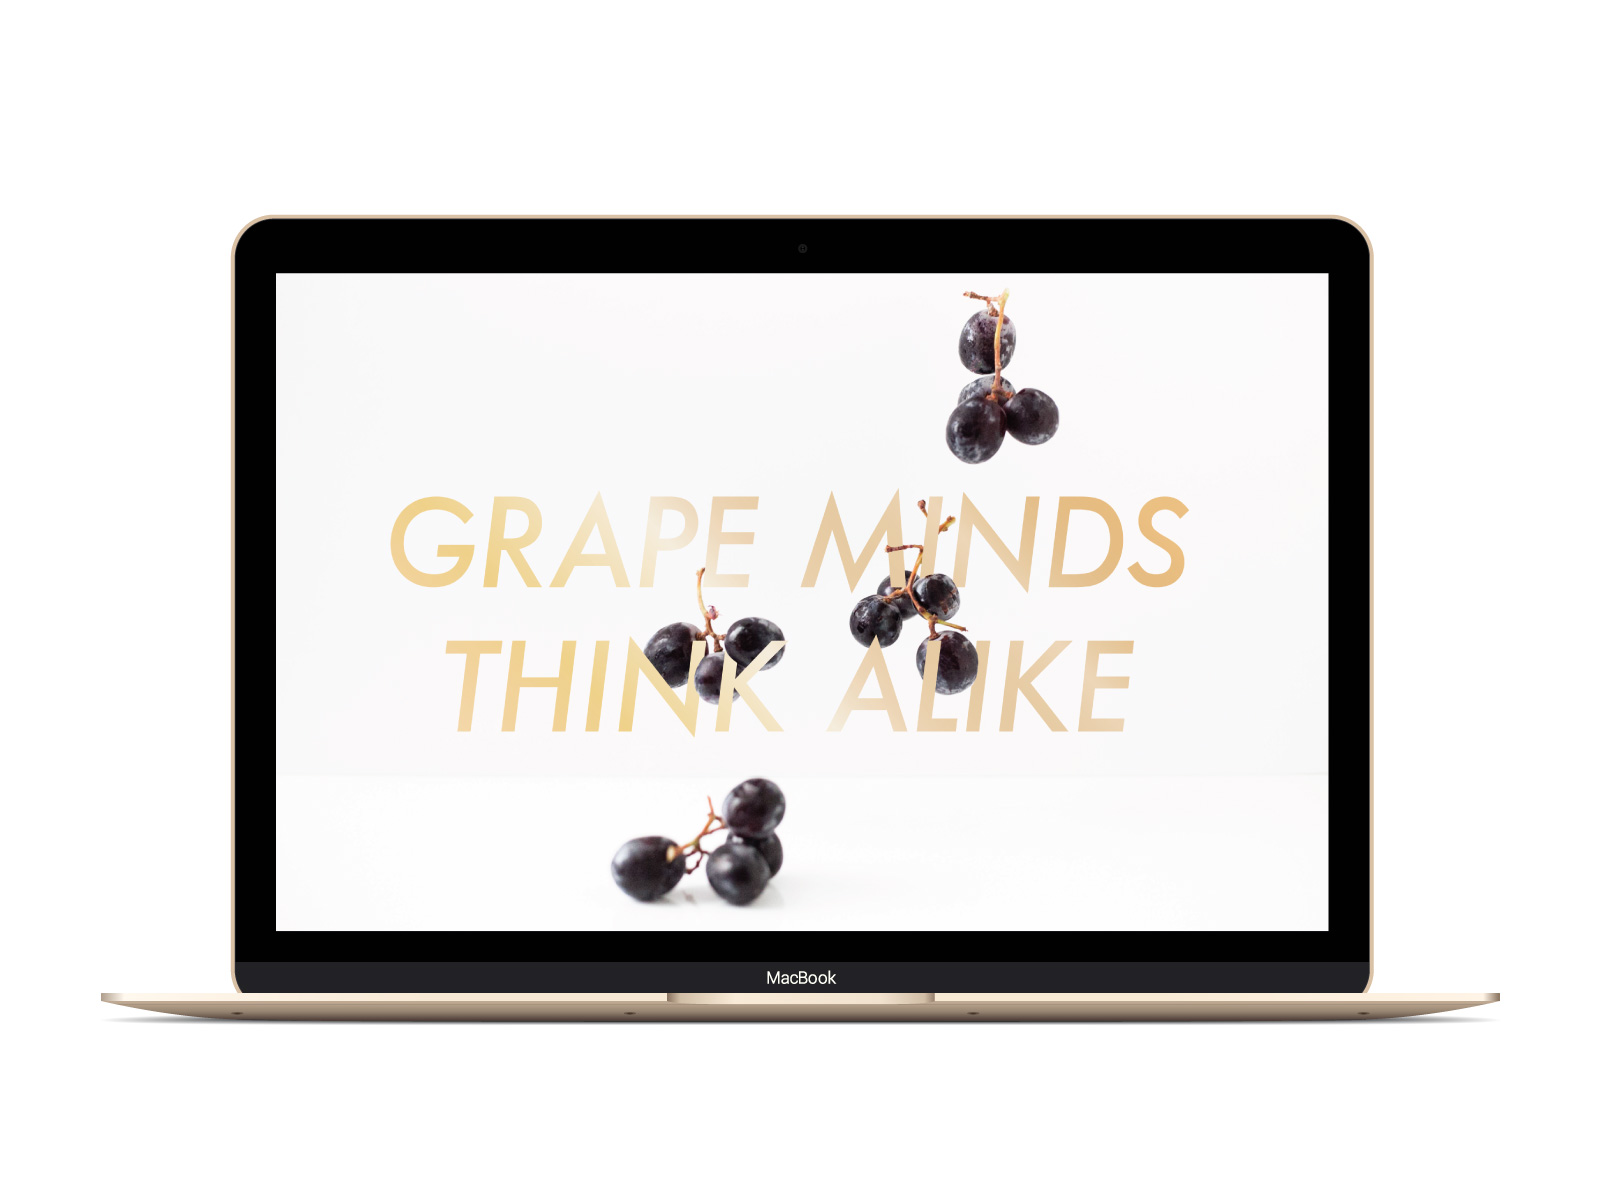 GrapeMinds copy.jpg